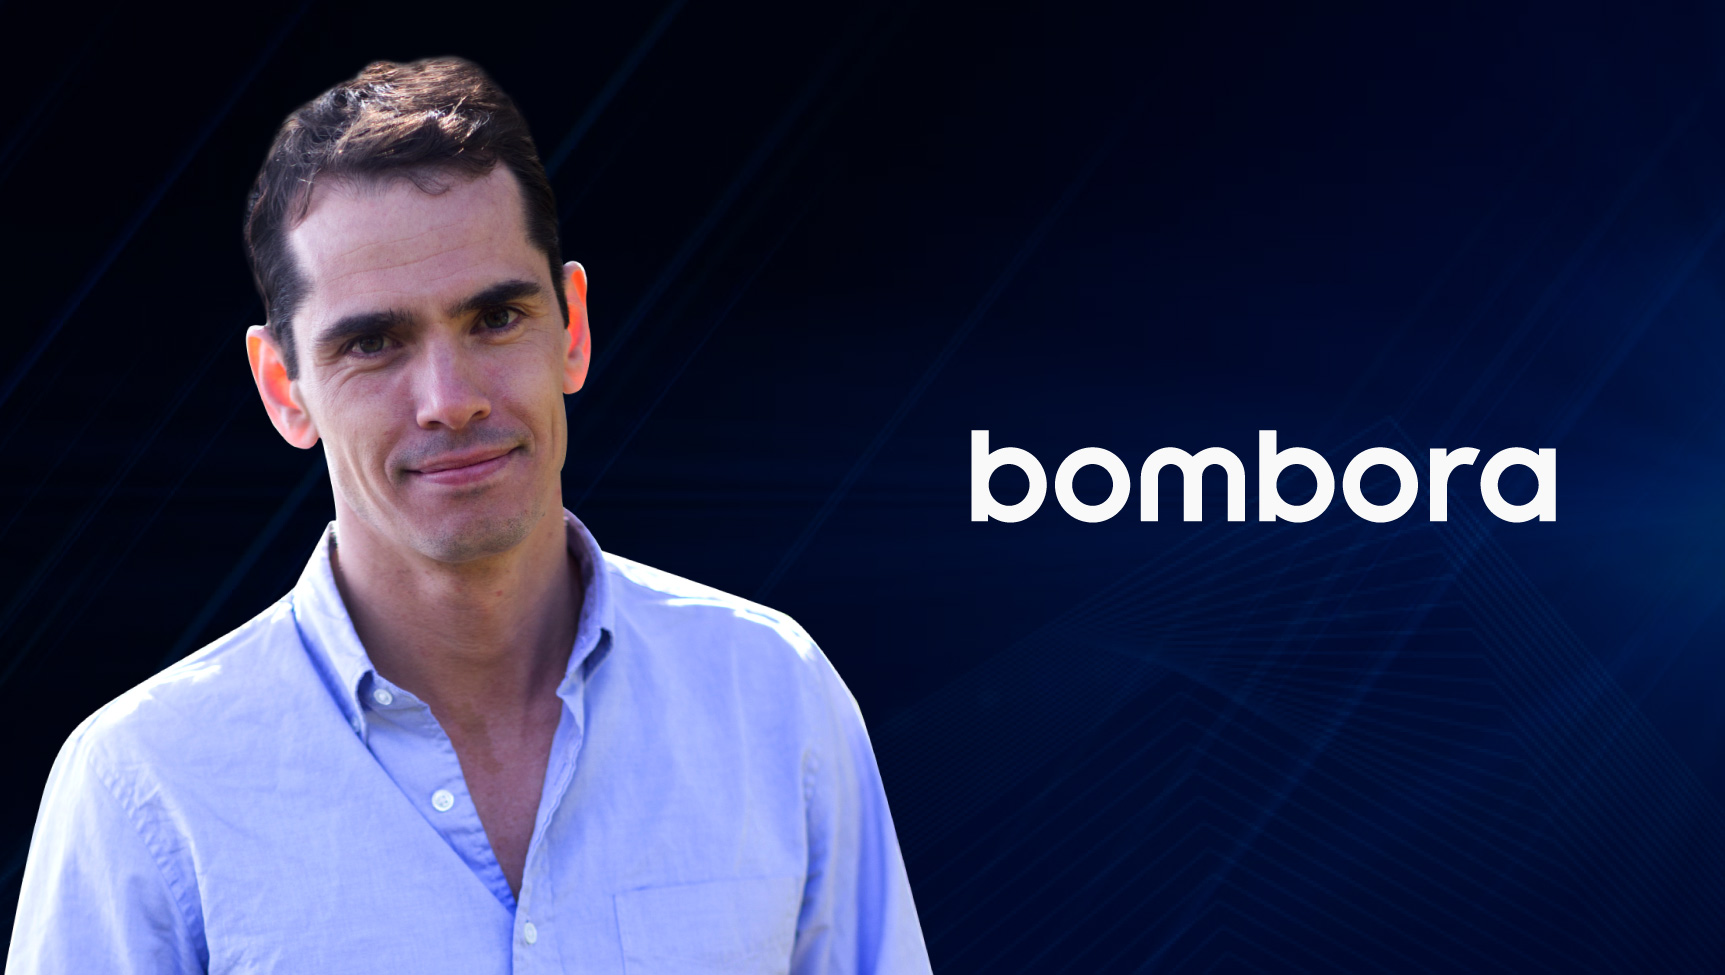 Salestech Interview with Mike Burton, Co-Founder and SVP, Data Sales at Bombora